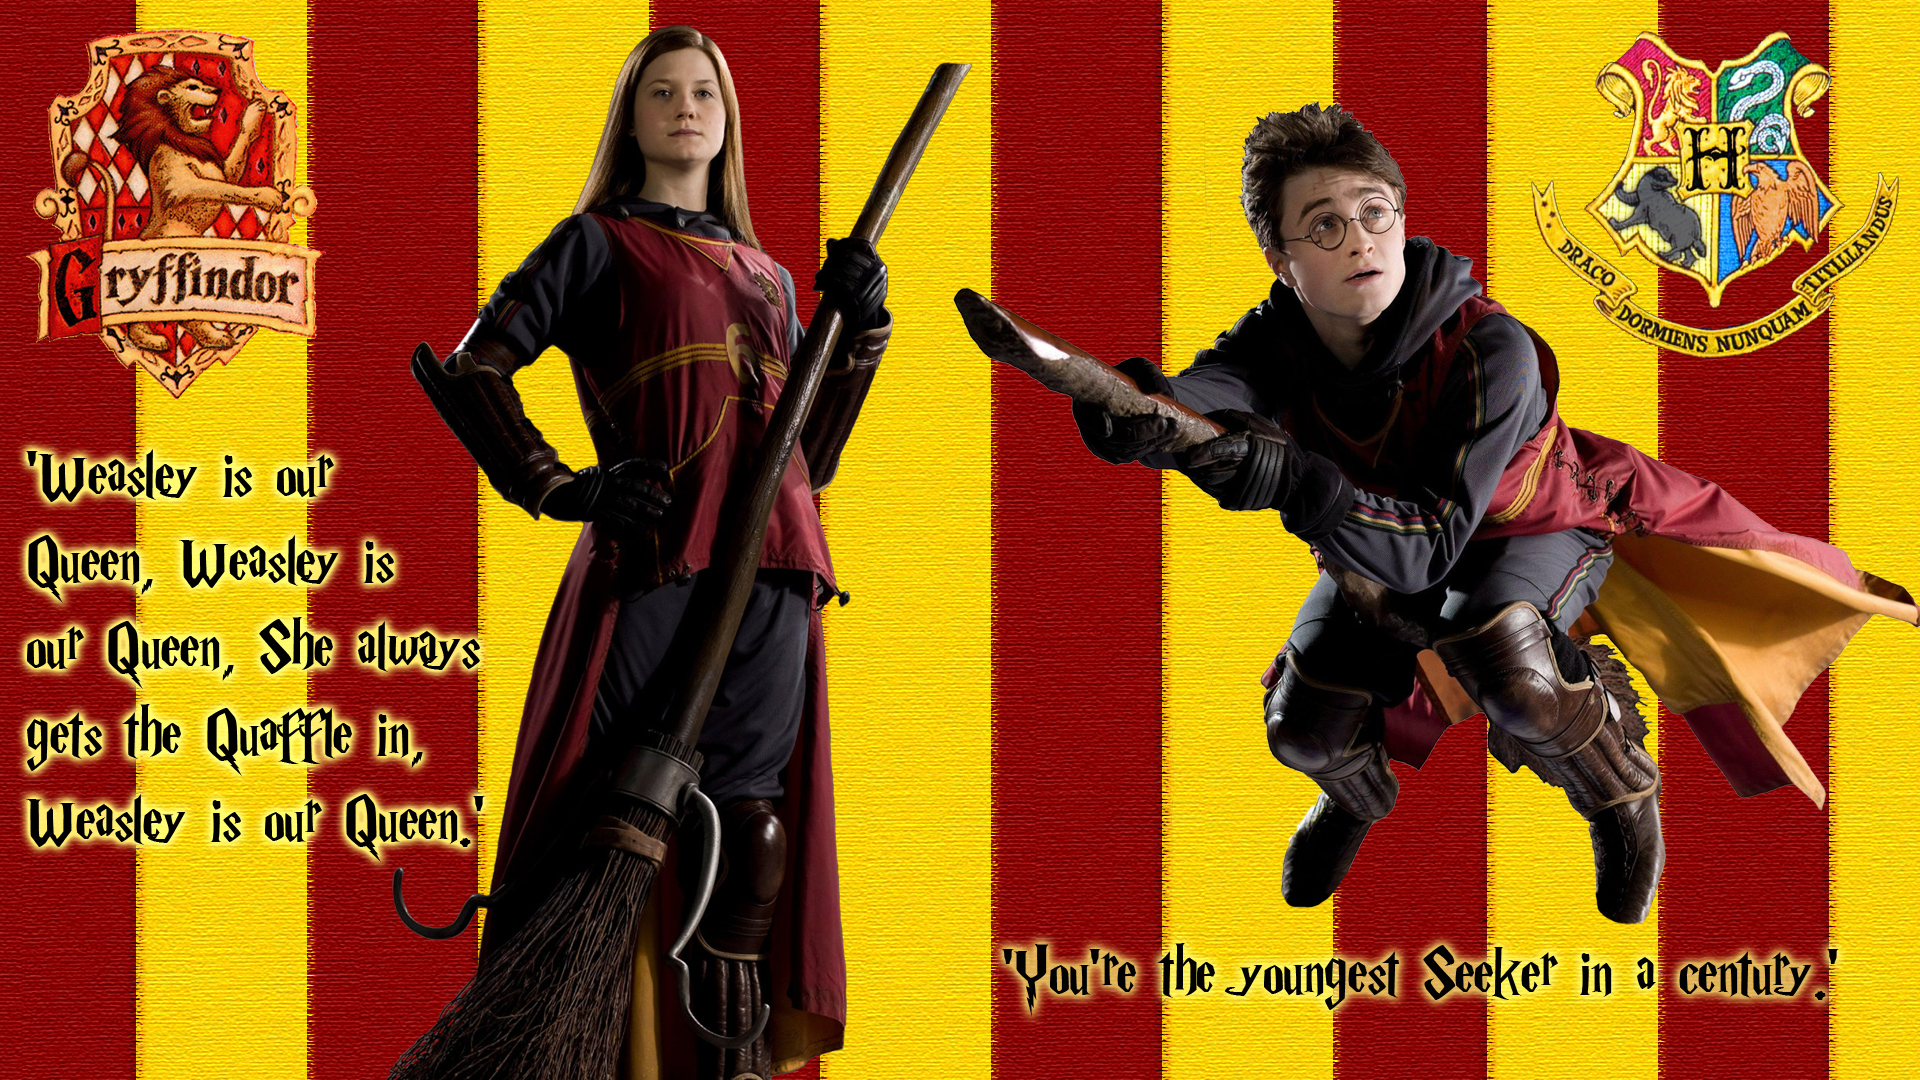 Gryffindor's étoile, star Quidditch Couple